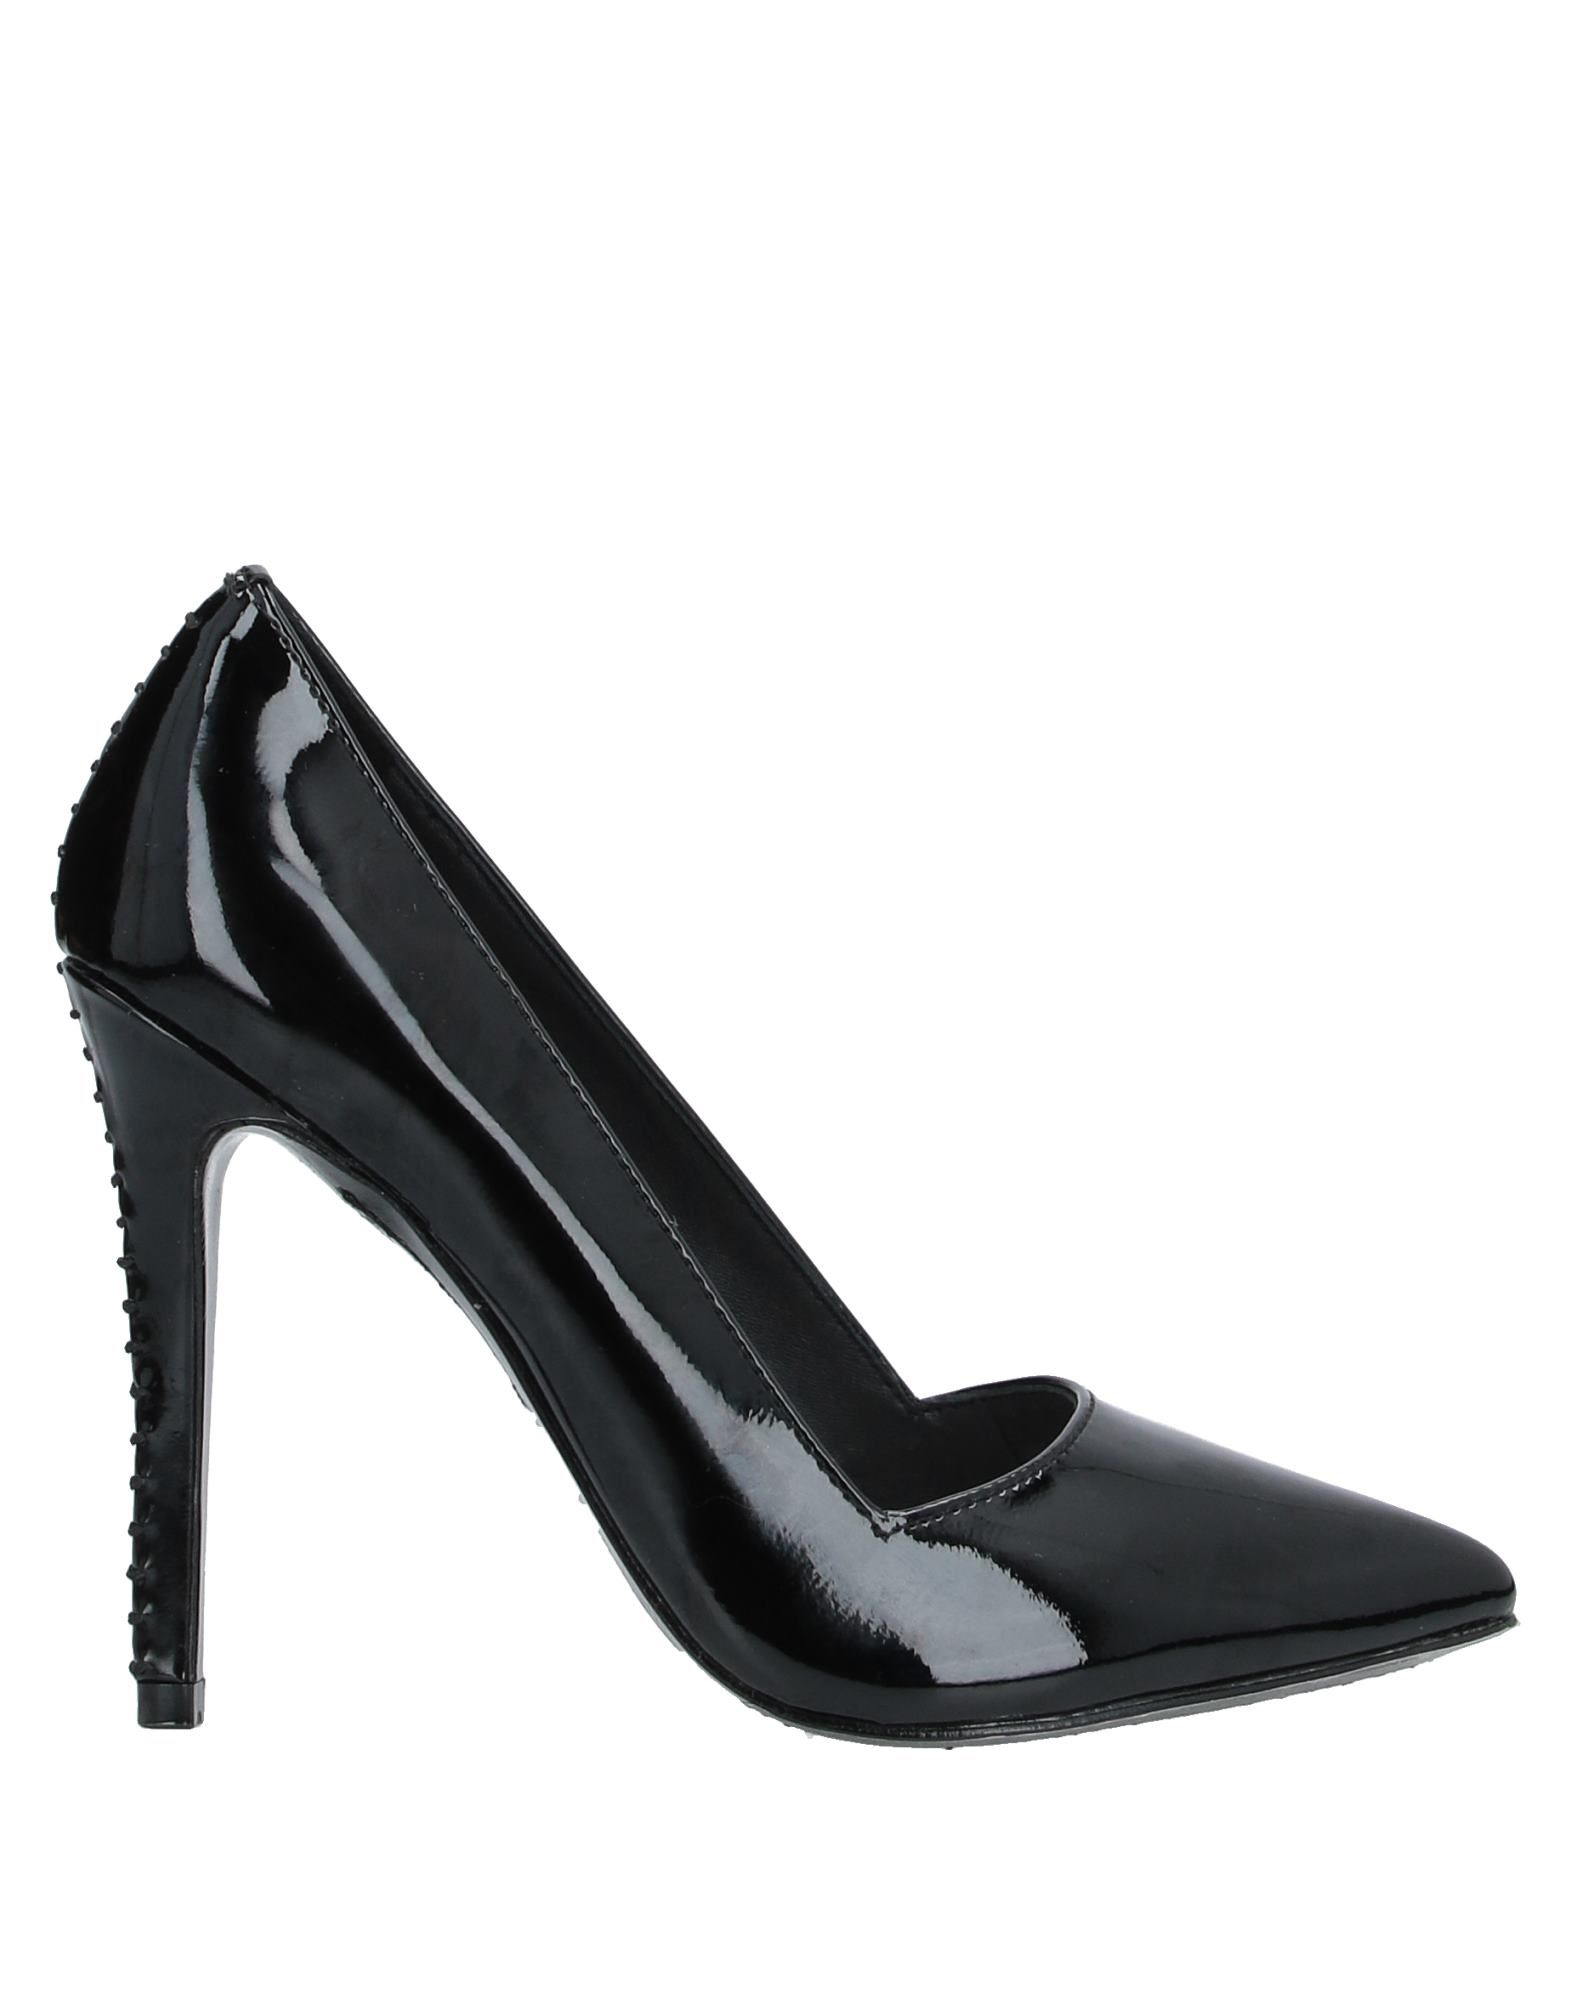 ALICE + OLIVIA Pumps. no appliqués, varnished effect, solid color, narrow toeline, spike heel, leather lining, leather sole, contains non-textile parts of animal origin. Soft Leather